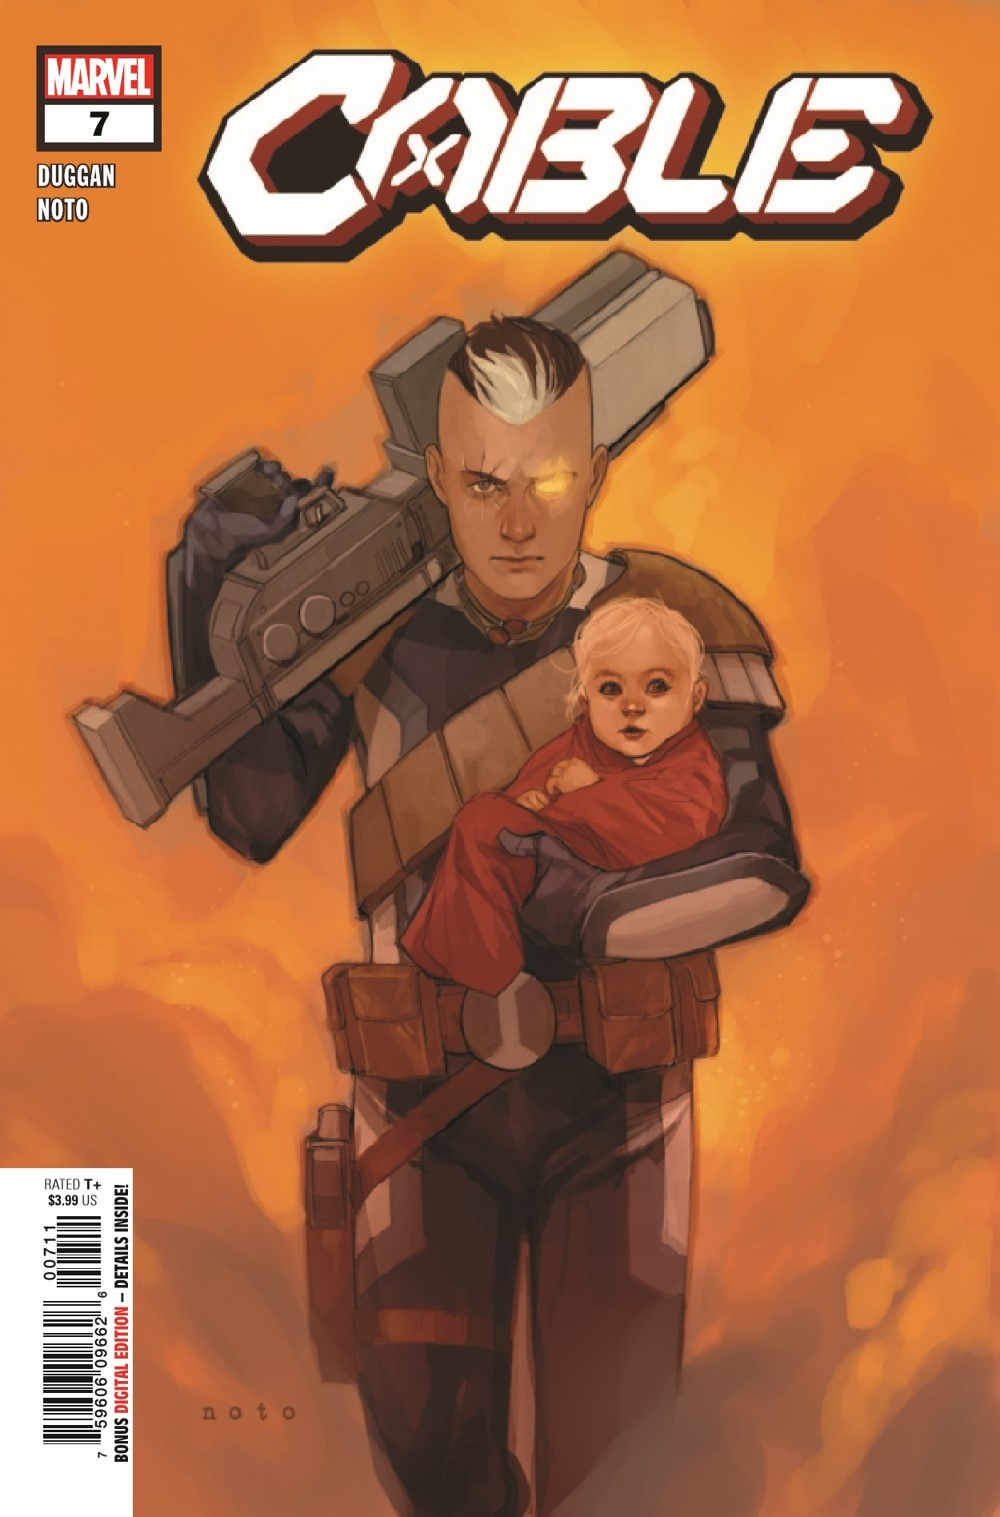 CABLE2020007_Preview-1 ComicList Previews: CABLE #7